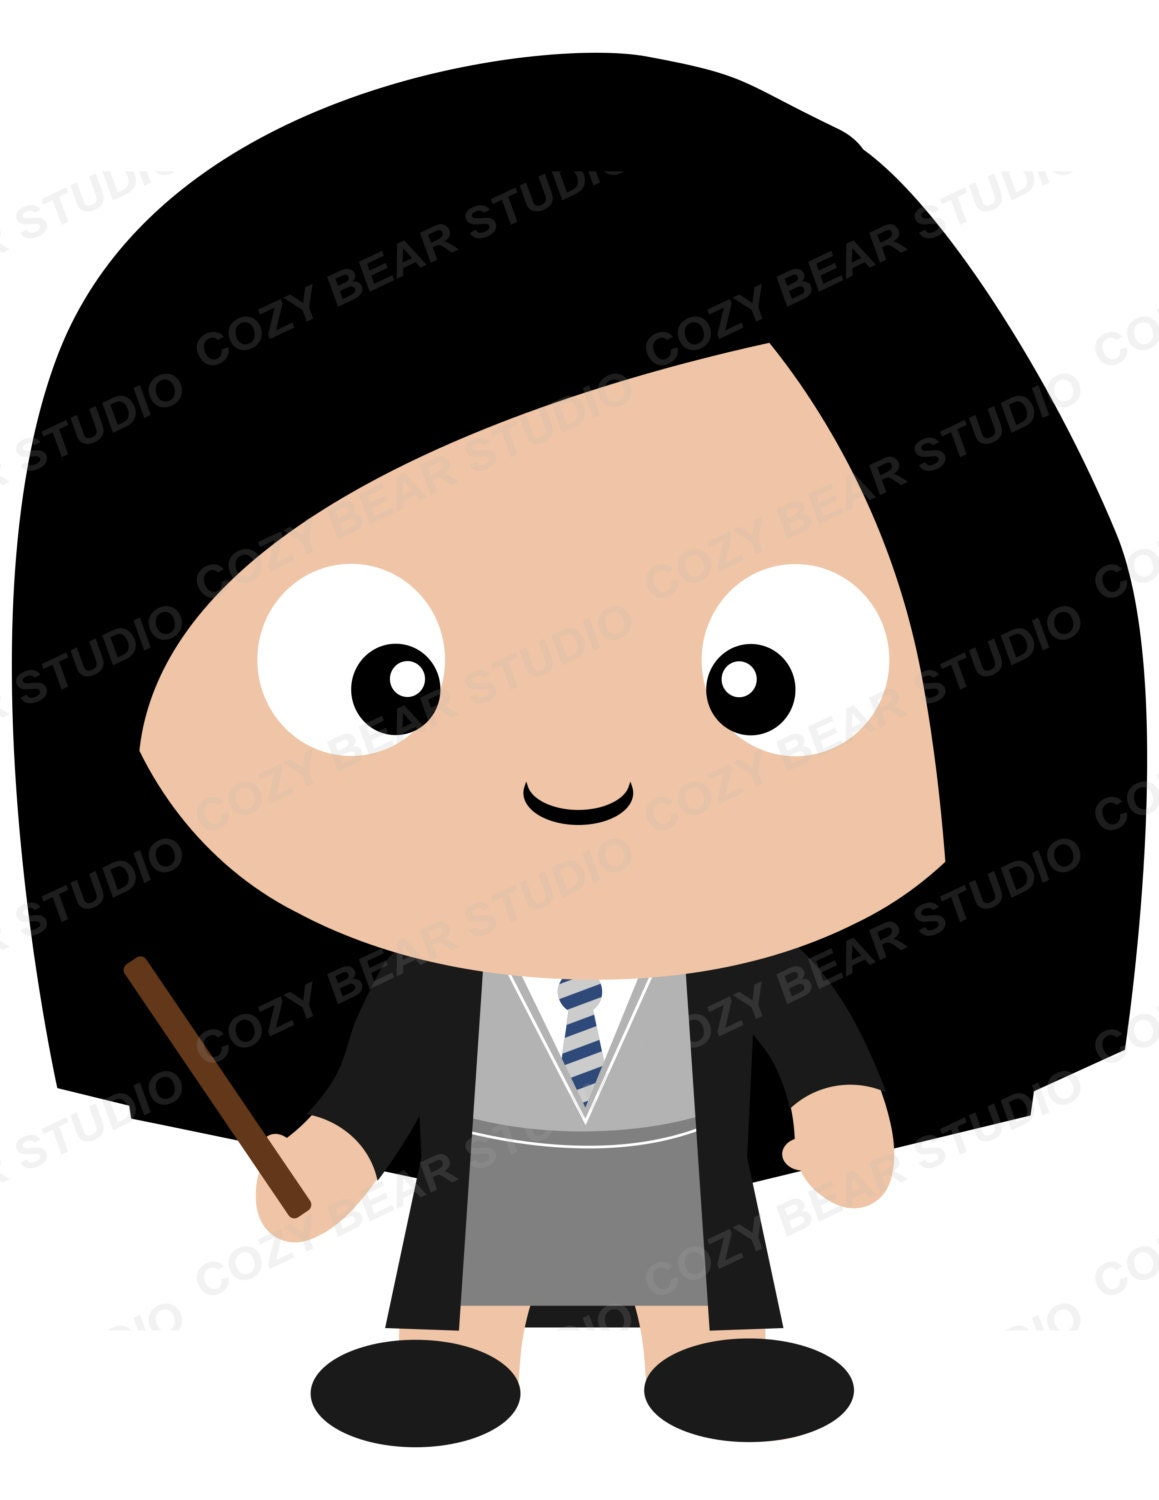 Harry Potter Clipart Cho Chang Dobby Ginny Weasley Harry